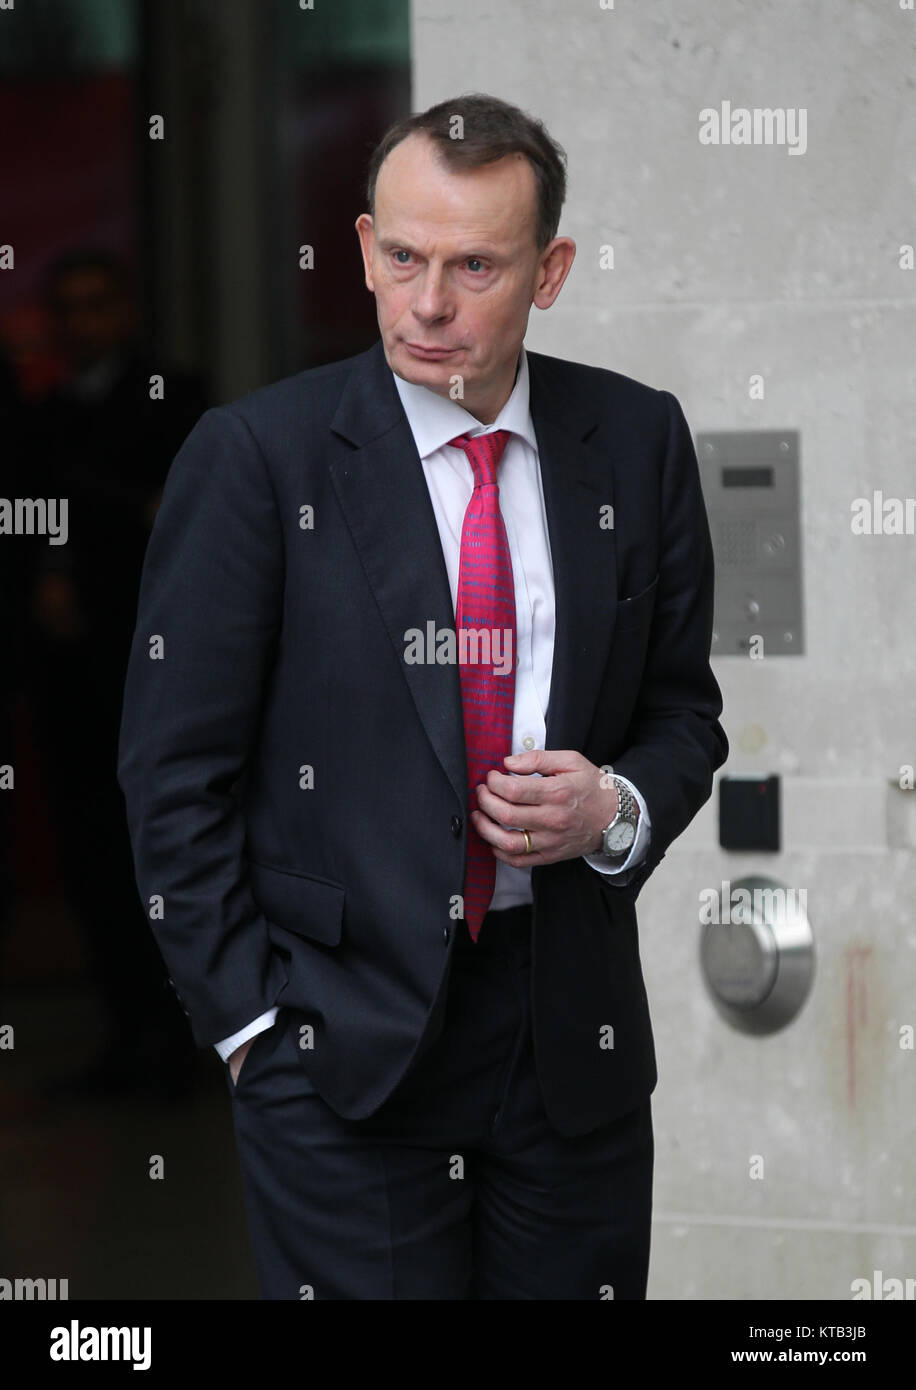 London, UK. 17th December, 2017. Andrew Marr seen at the BBC studios in London - Stock Image